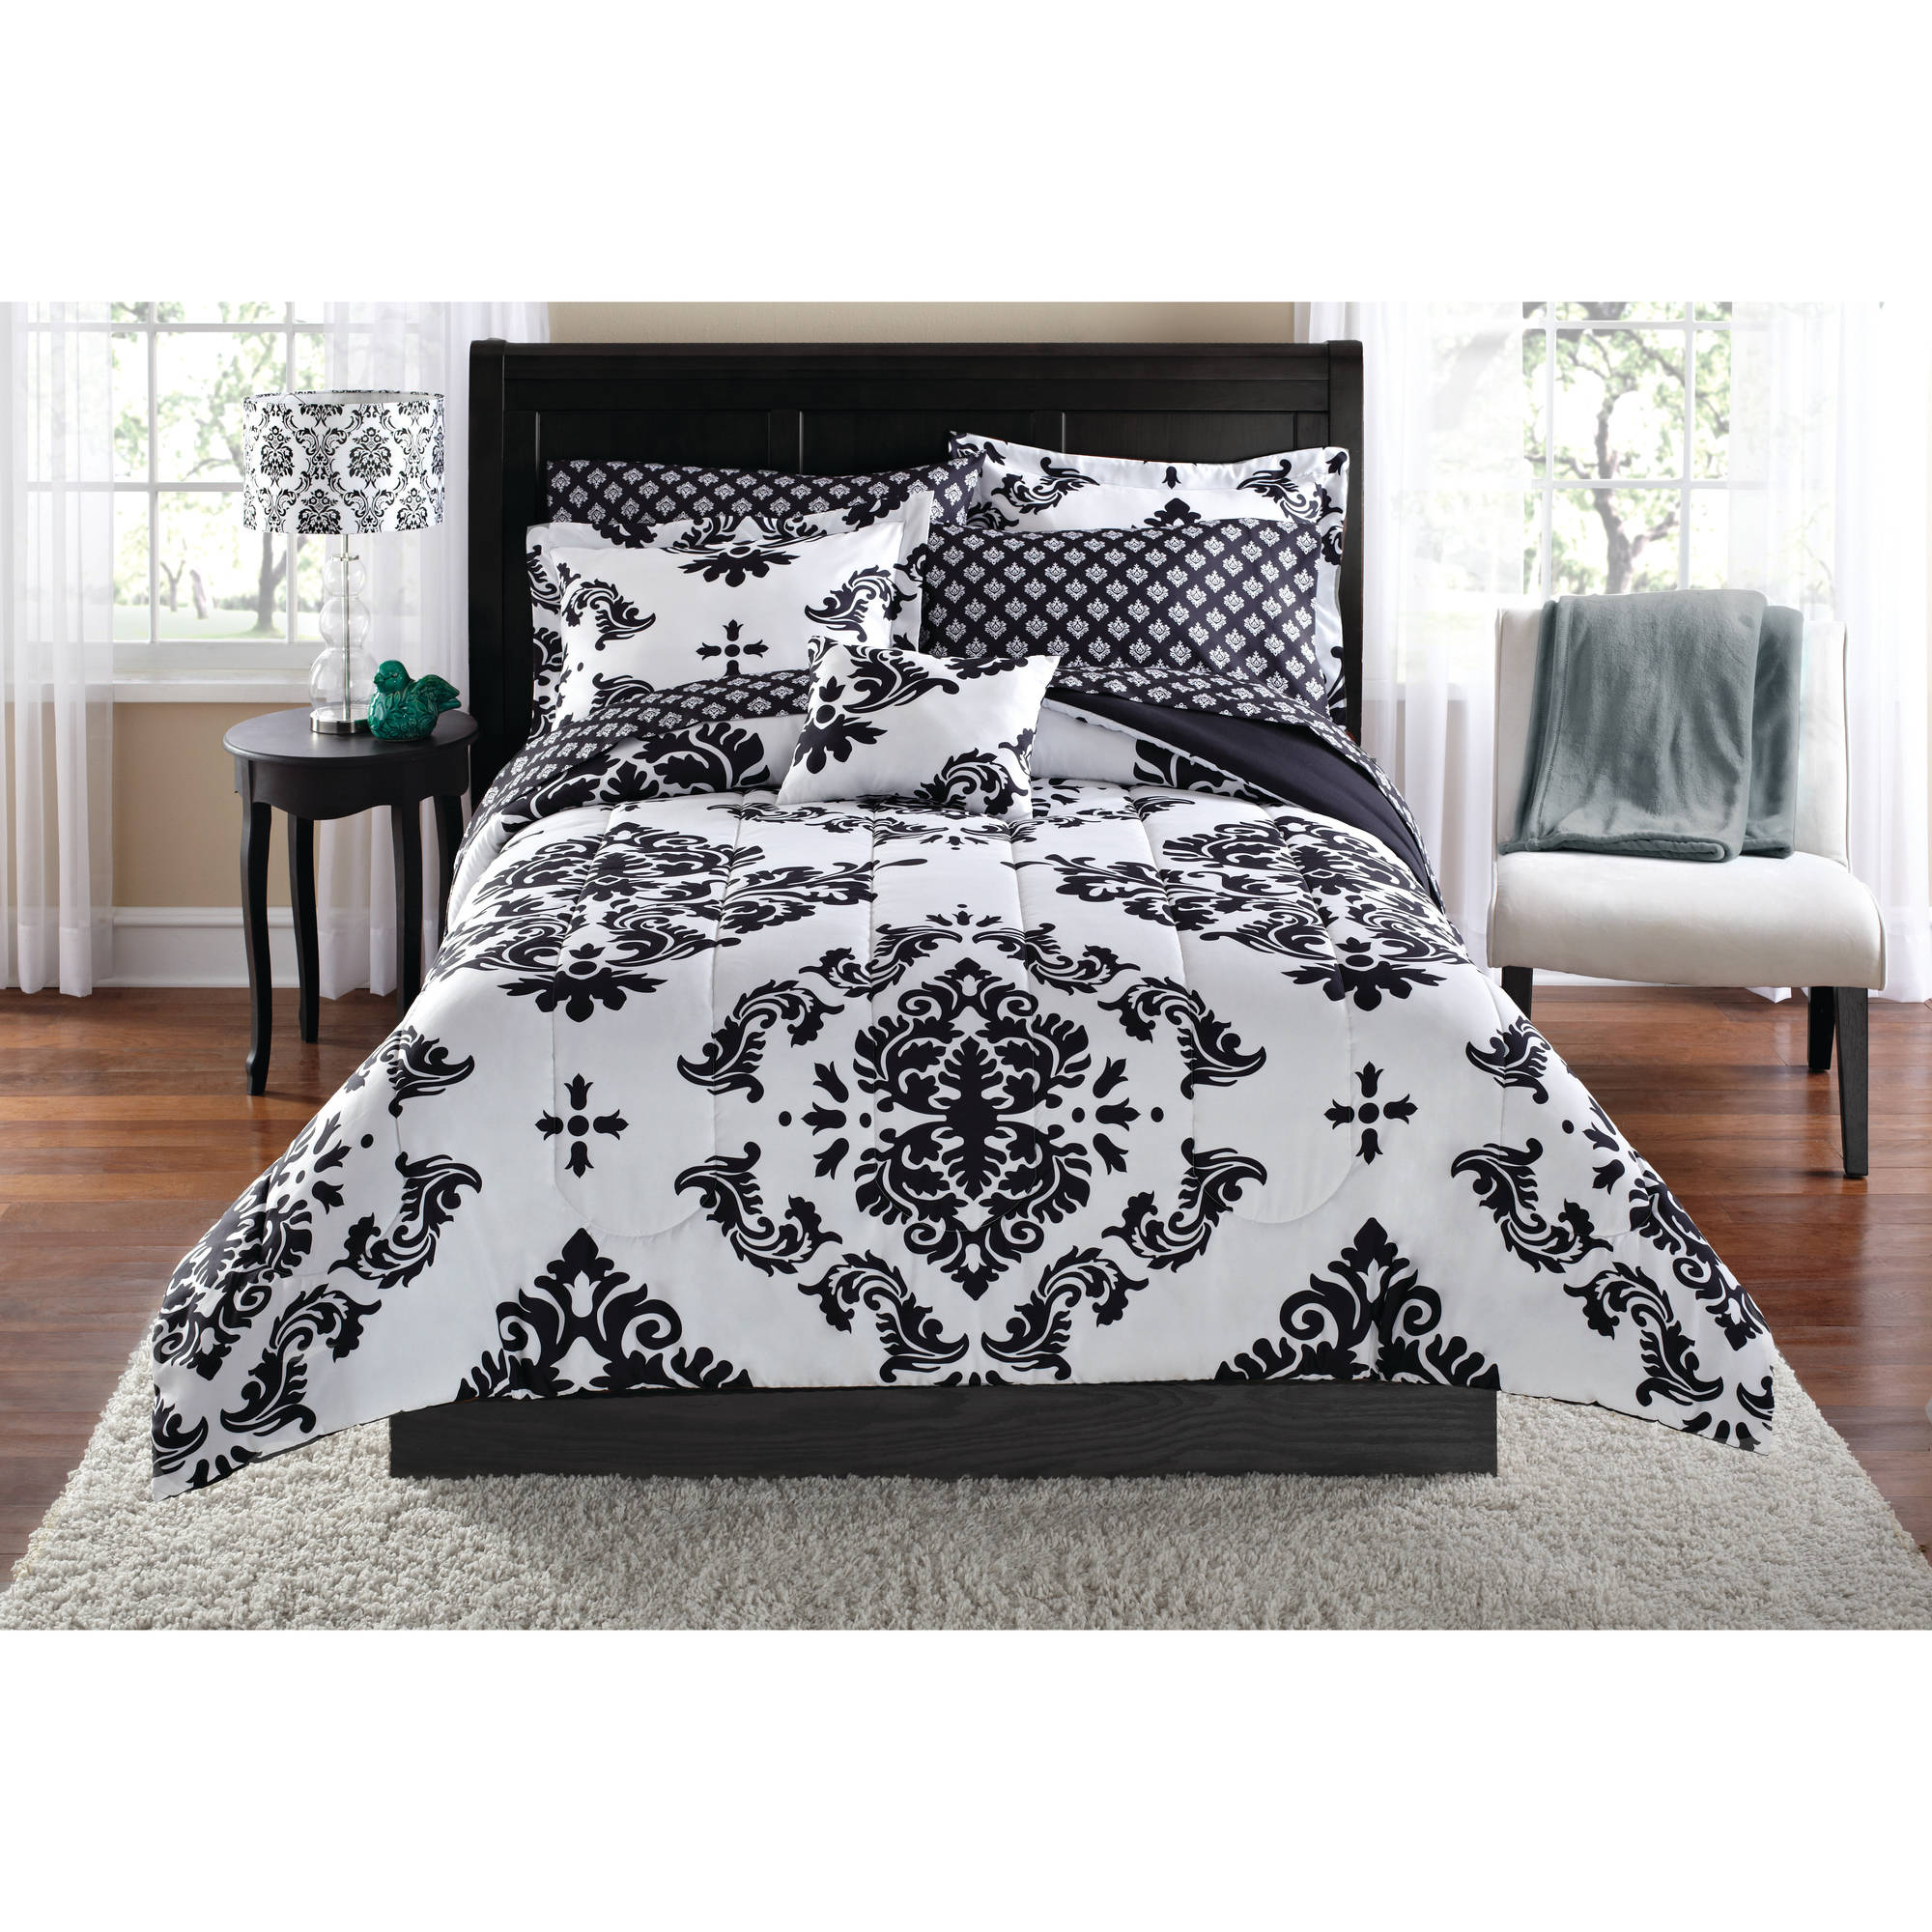 mainstays classic noir 7 8 piece bed in a bag bedding comforter set twin twinxl black